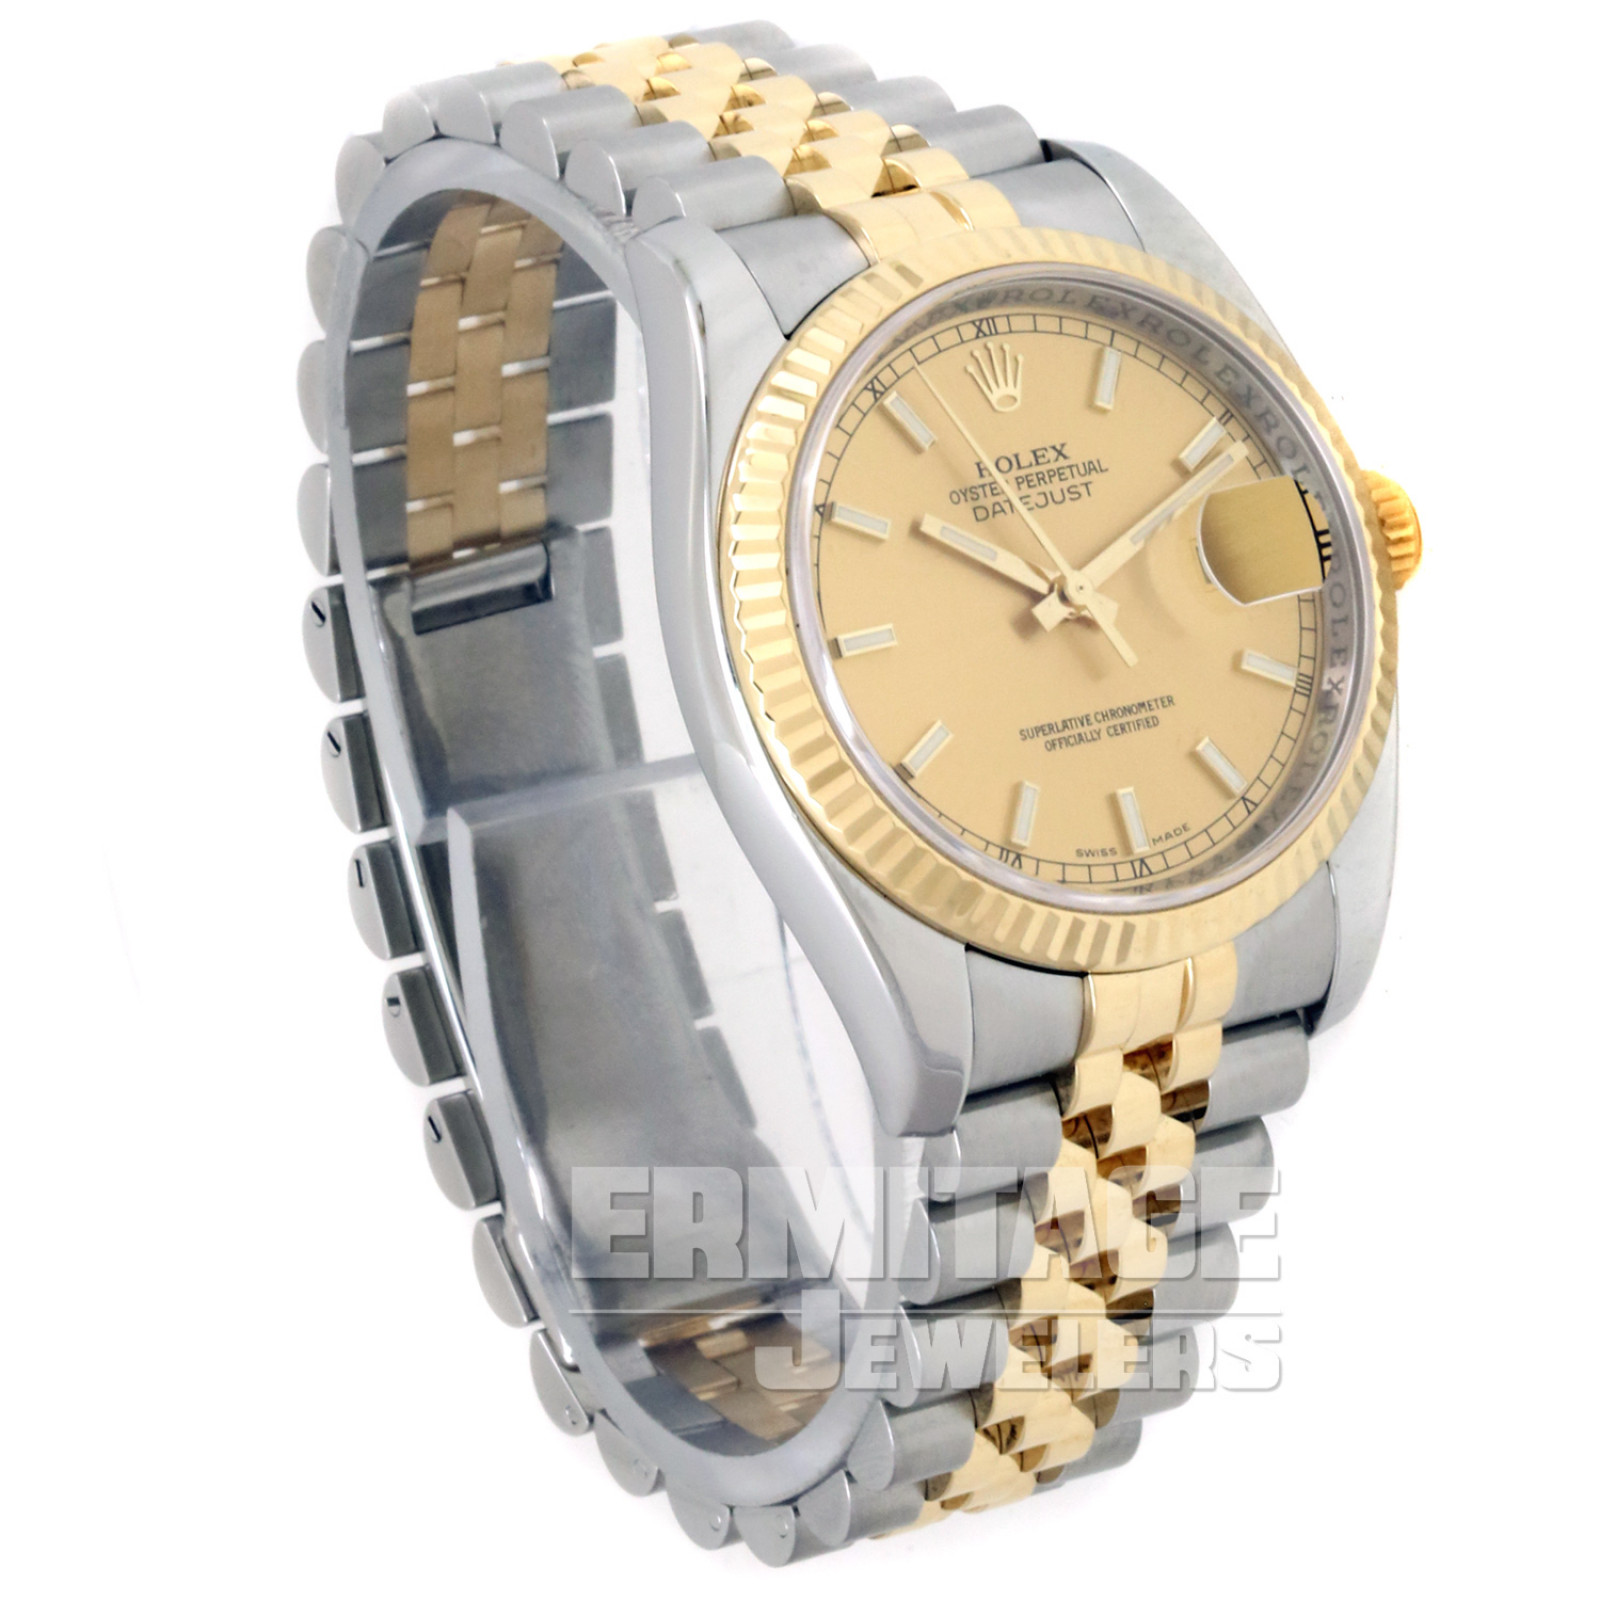 Rolex Datejust 116233 with Champagne Dial